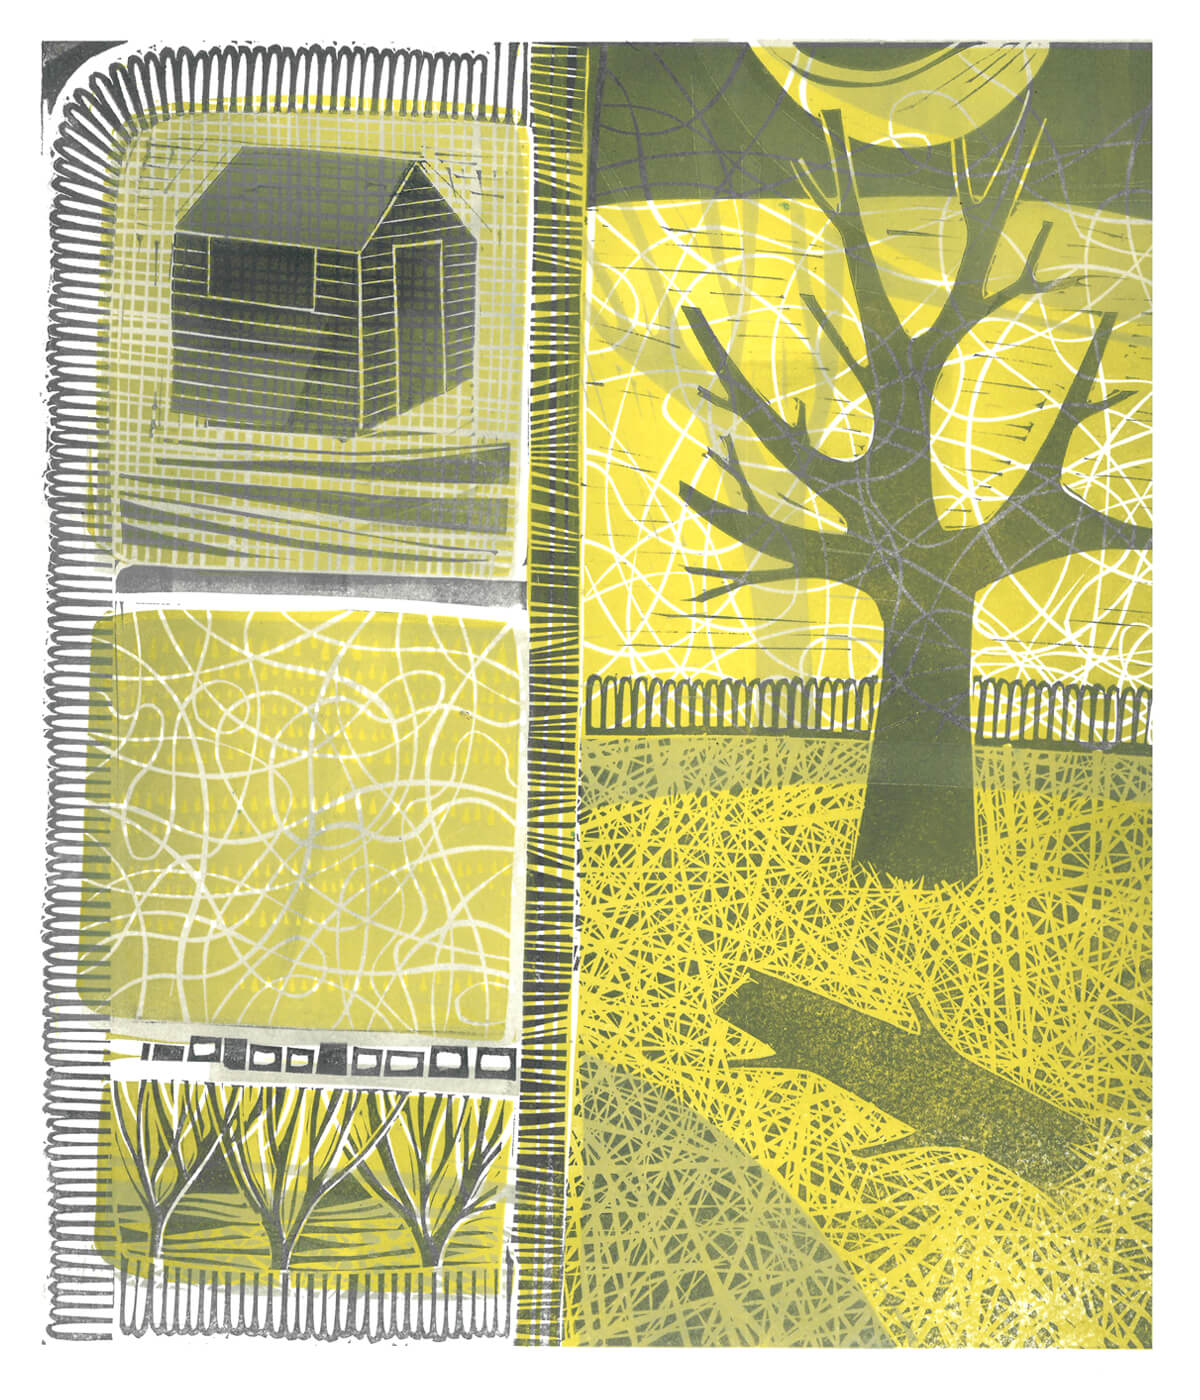 Shortest Day III, a linocut print by Sarah Kirby